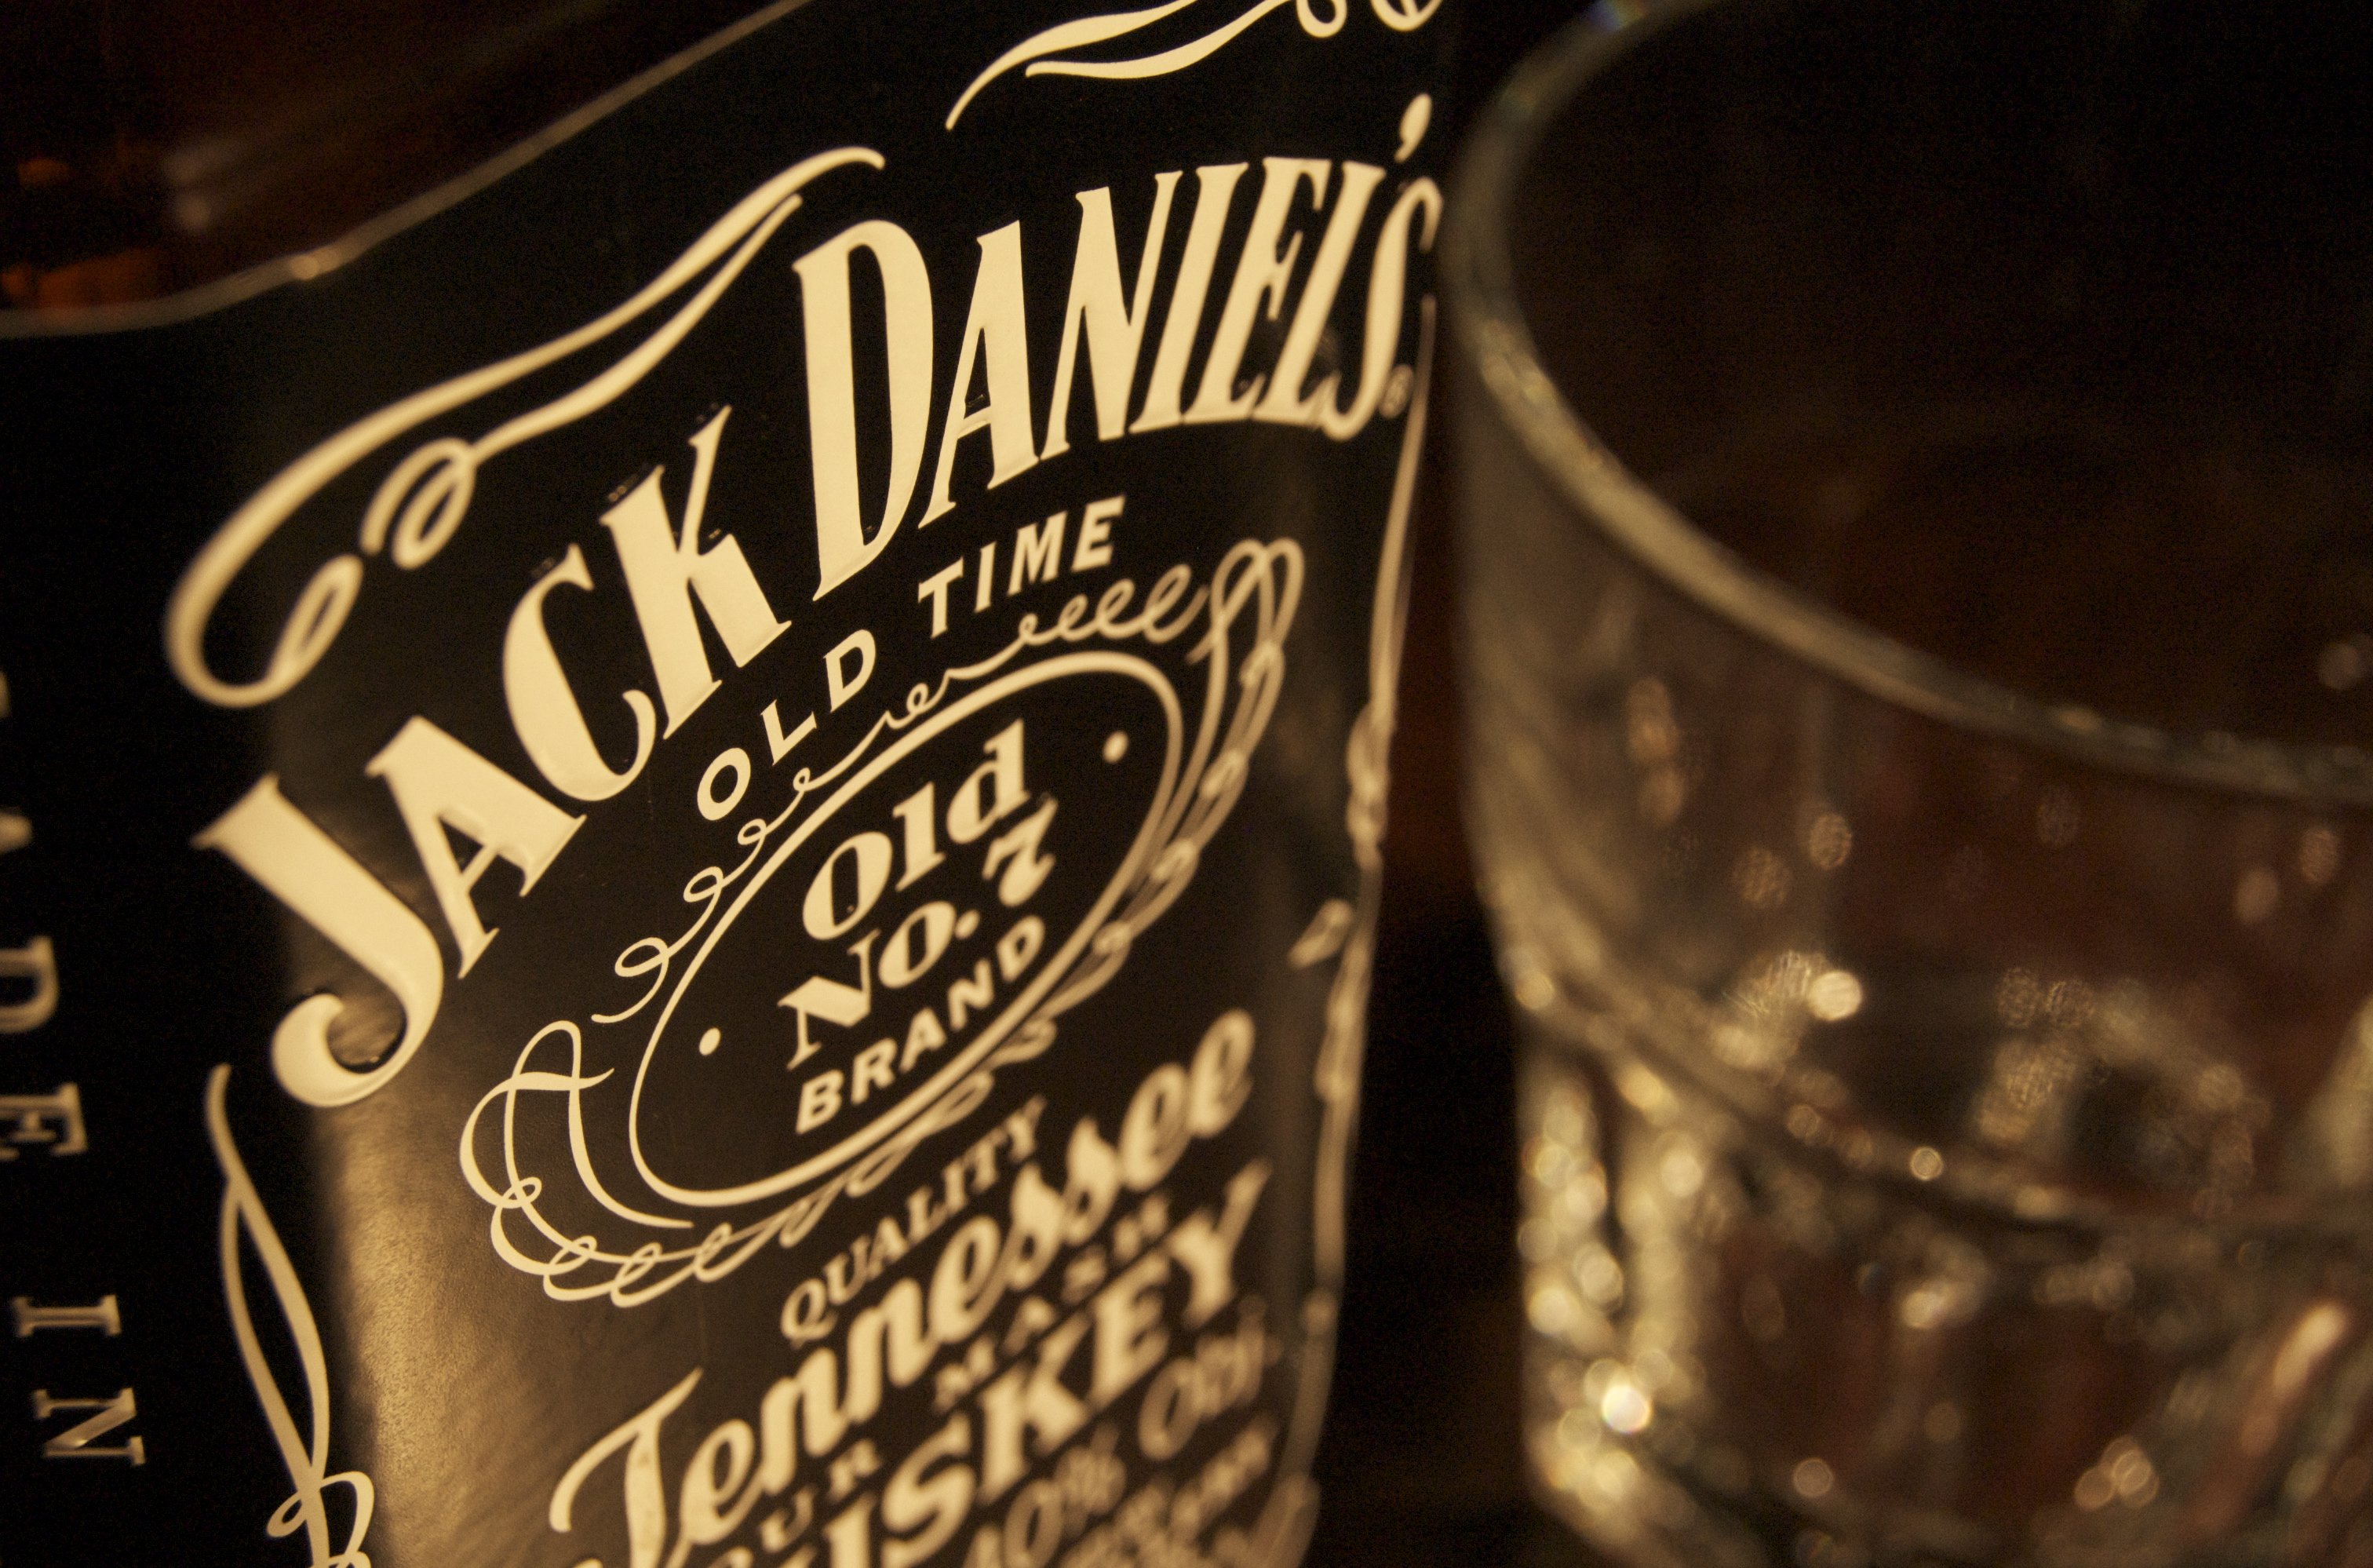 Jack daniels wallpapers high quality download free voltagebd